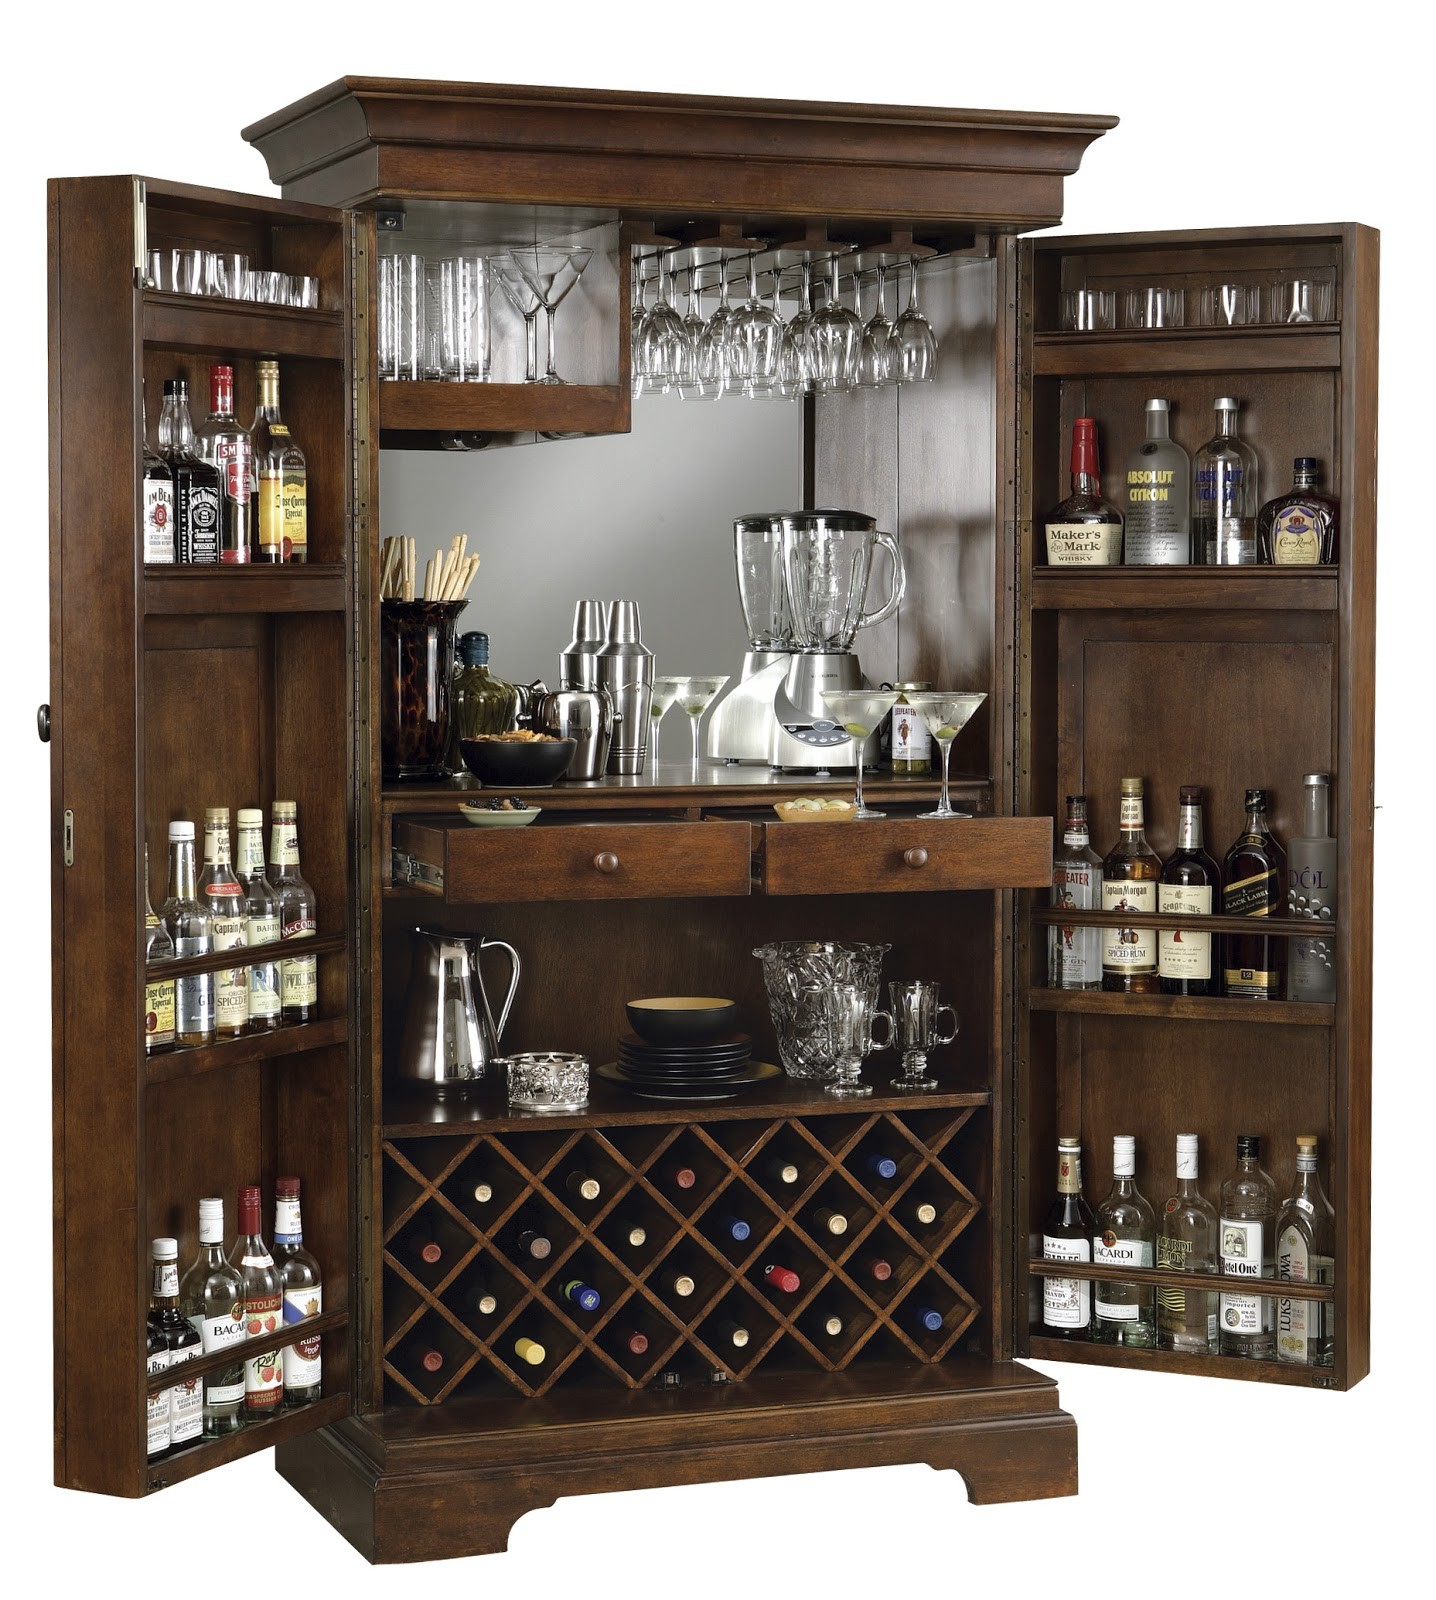 Bar Furniture Home: Expressions Of Time